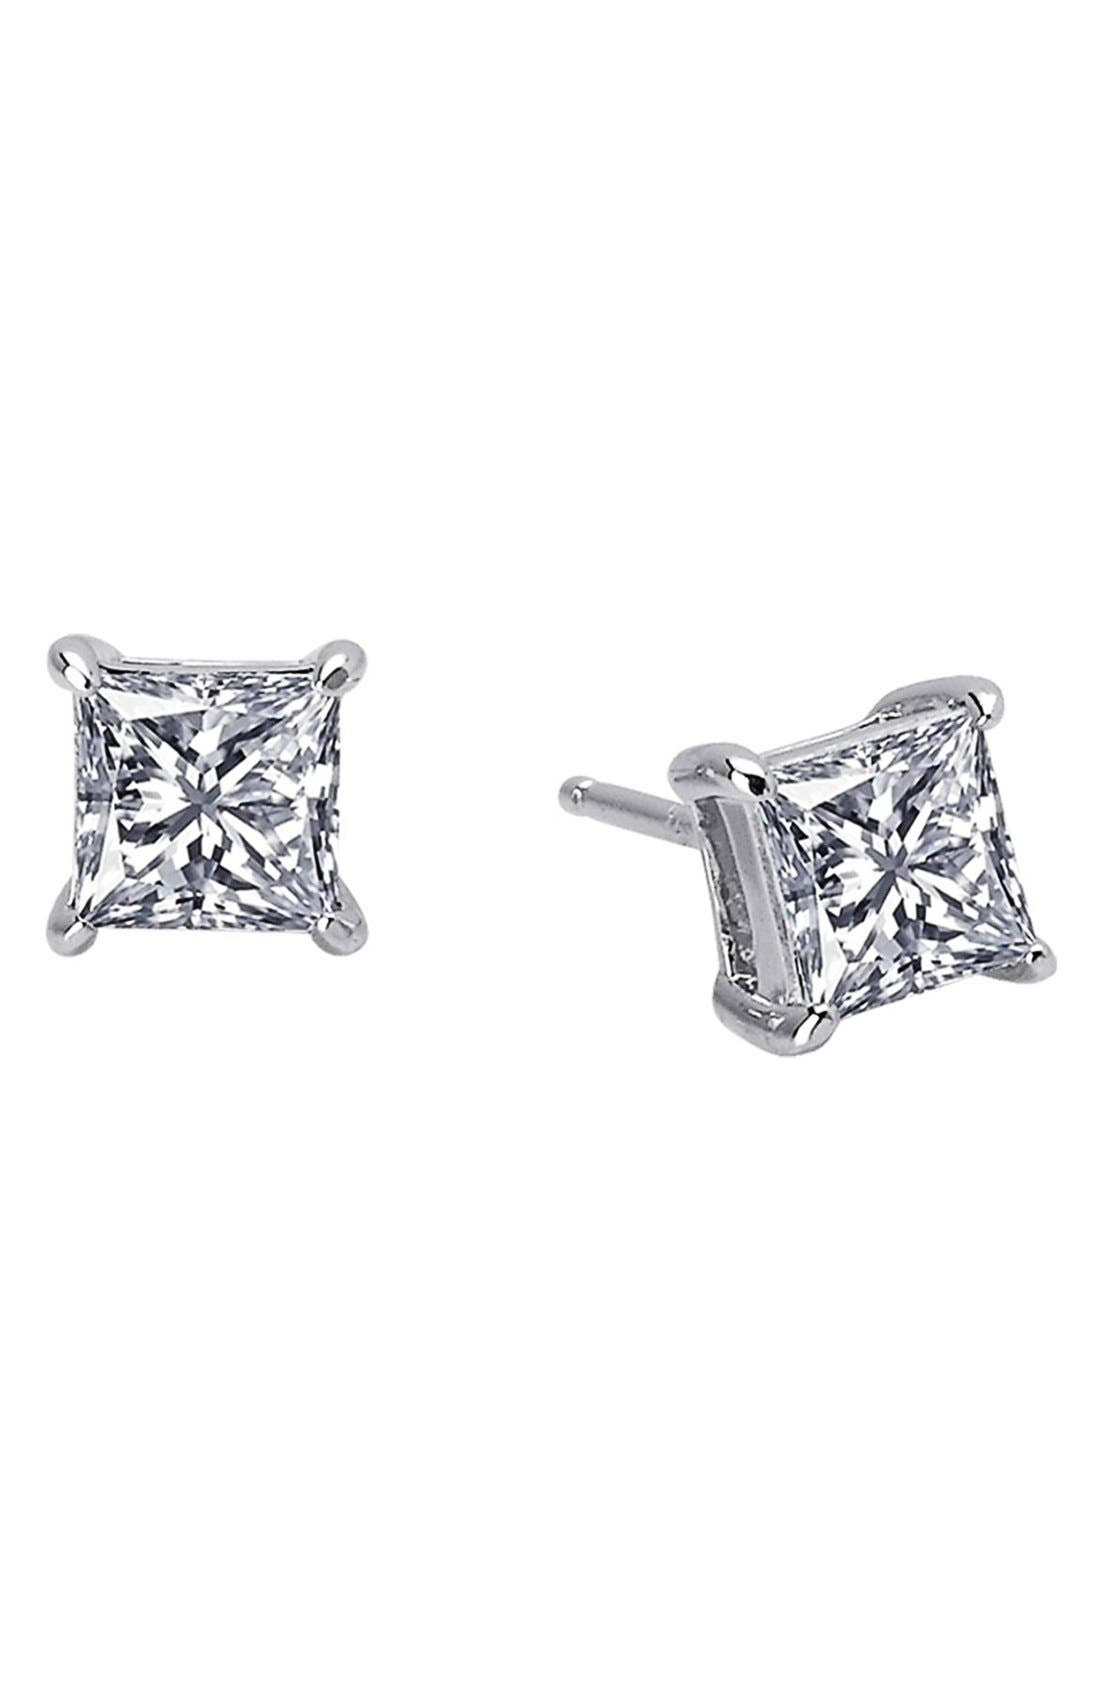 Lafonn 'Lassaire' Princess Cut Stud Earrings